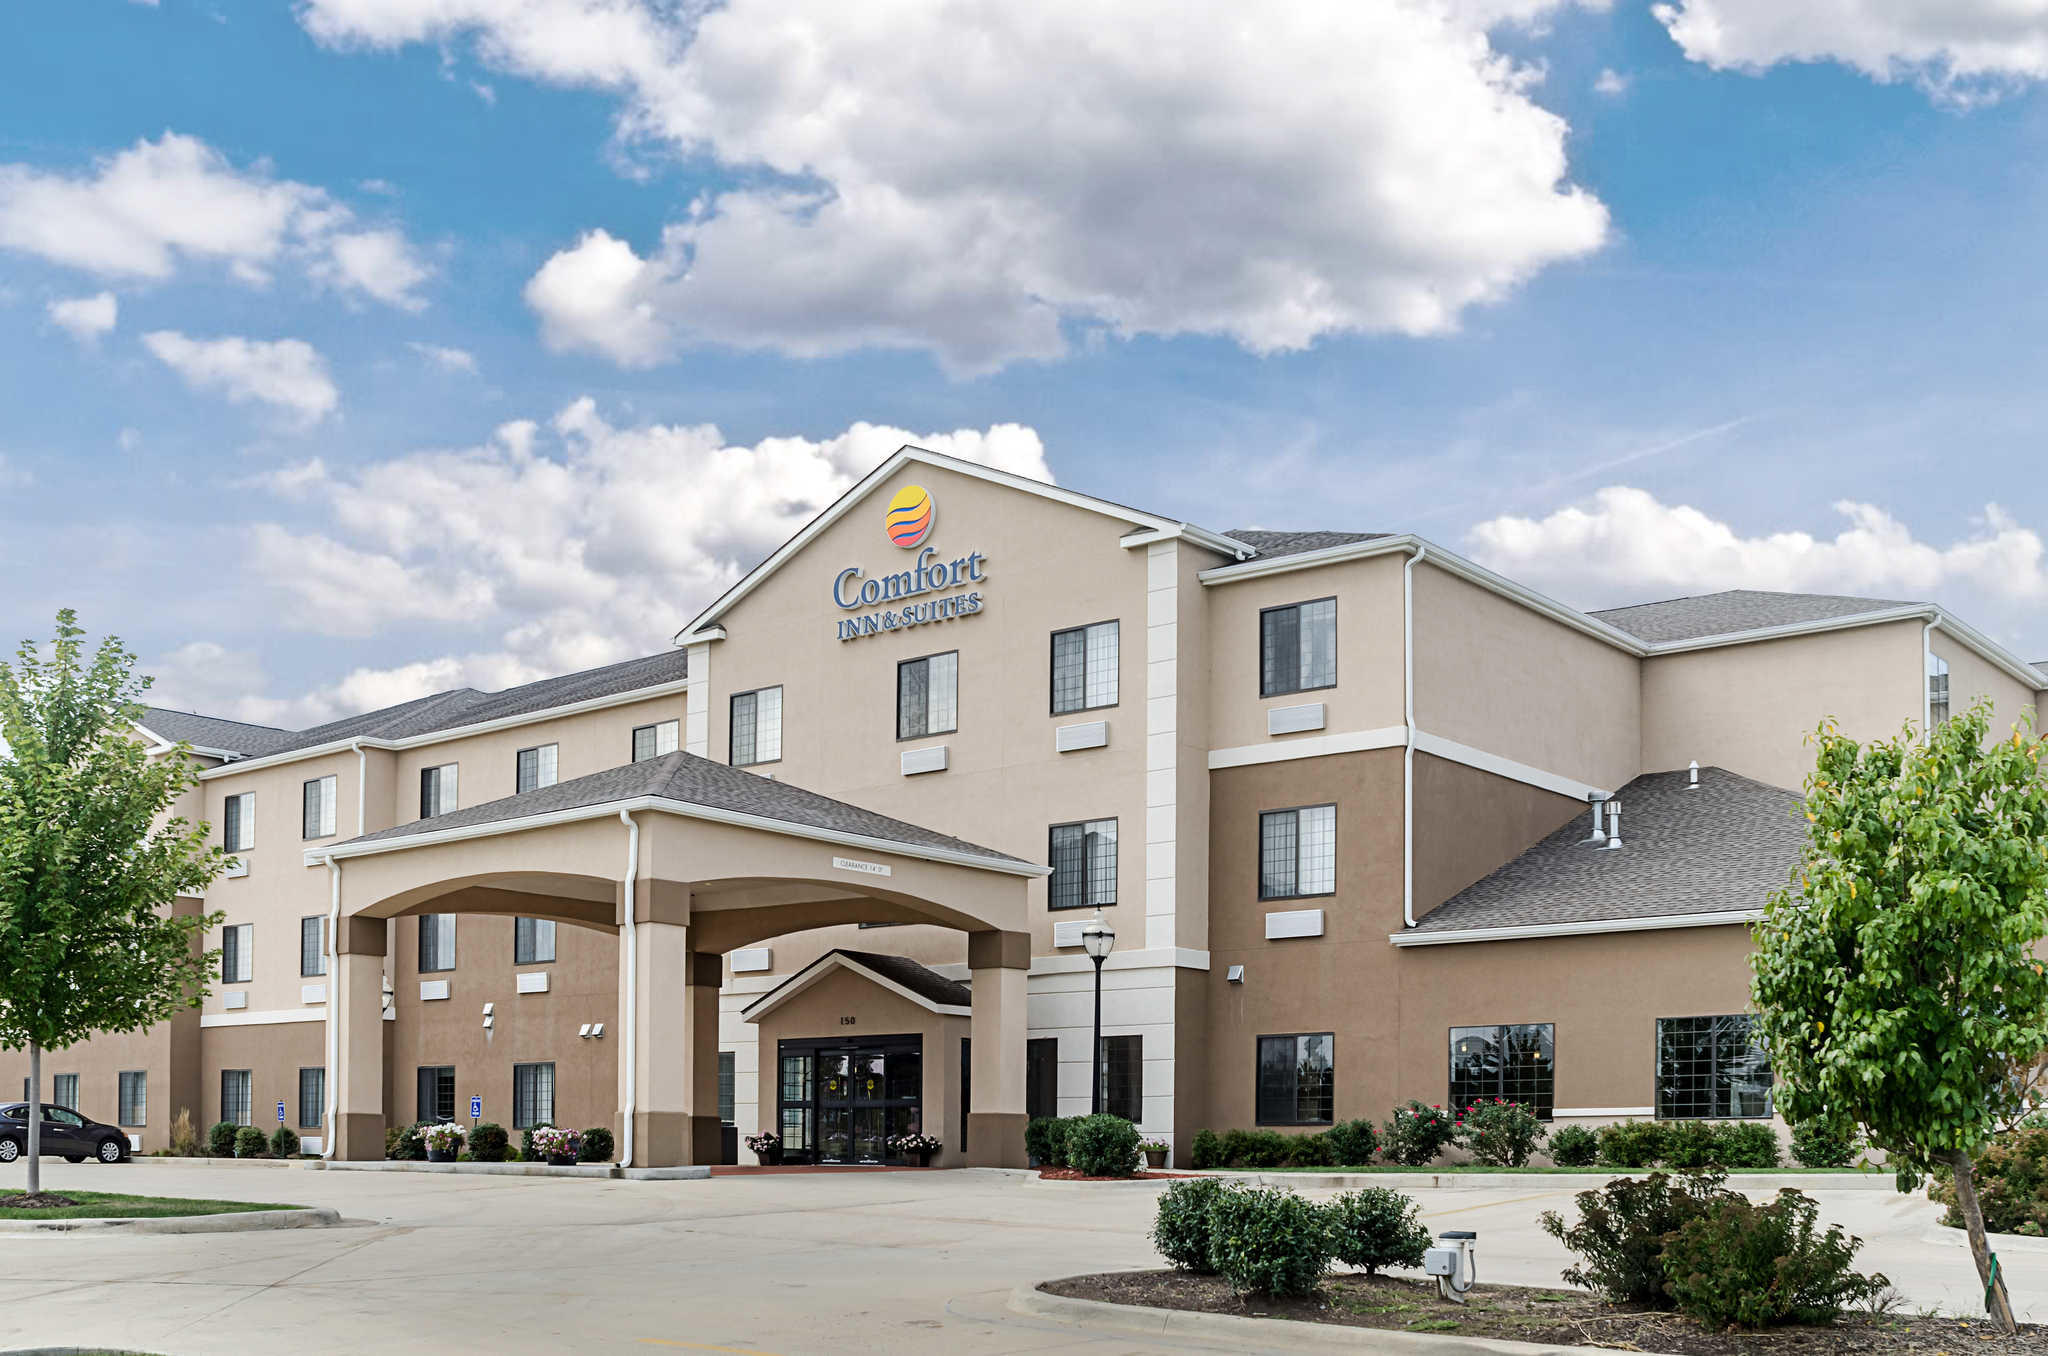 Comfort Inn & Suites Lawrence - University Area image 0